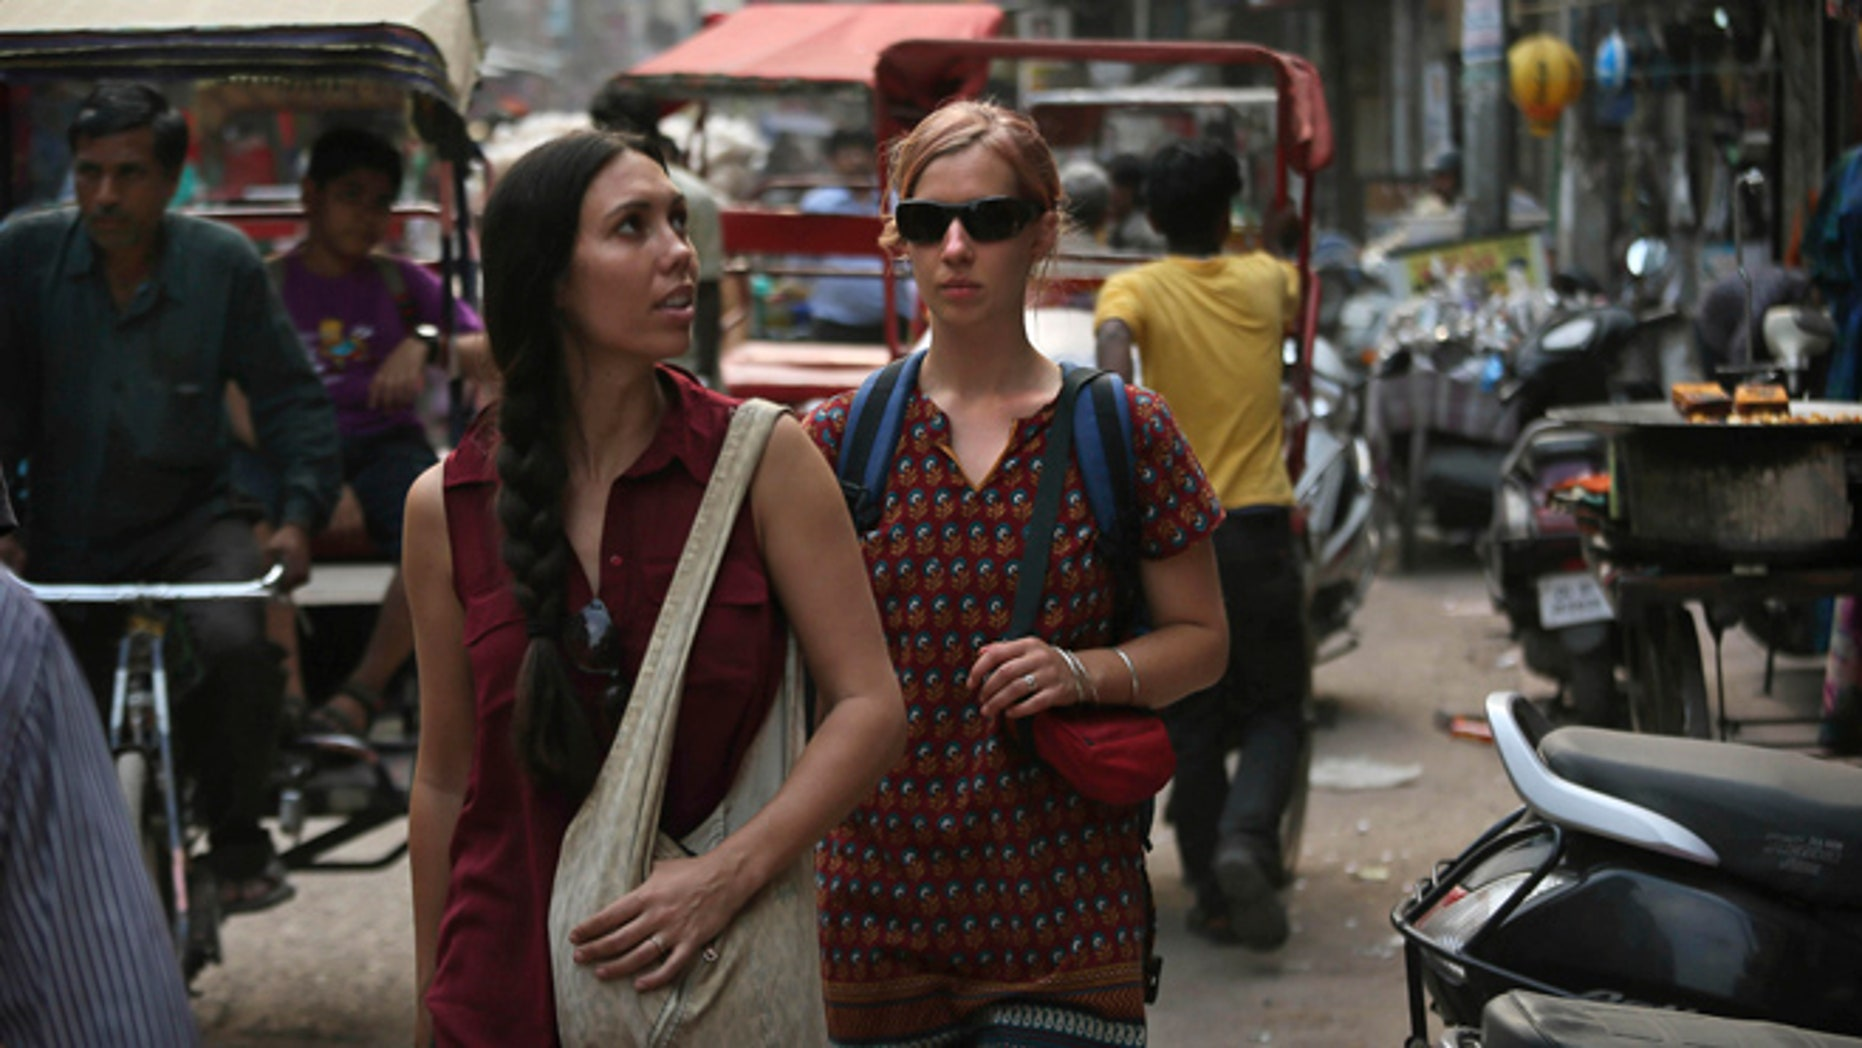 April 2, 2013: In this photo, foreign tourists walk on a street near the railway station in New Delhi, India. Violence against women, and the huge publicity generated by recent attacks here, is threatening India's $17.7 billion tourism industry. A new study shows tourism has plunged, especially among women, since a 23-year-old Indian student was raped on a New Delhi bus and later died from her injuries, a case that garnered worldwide publicity.